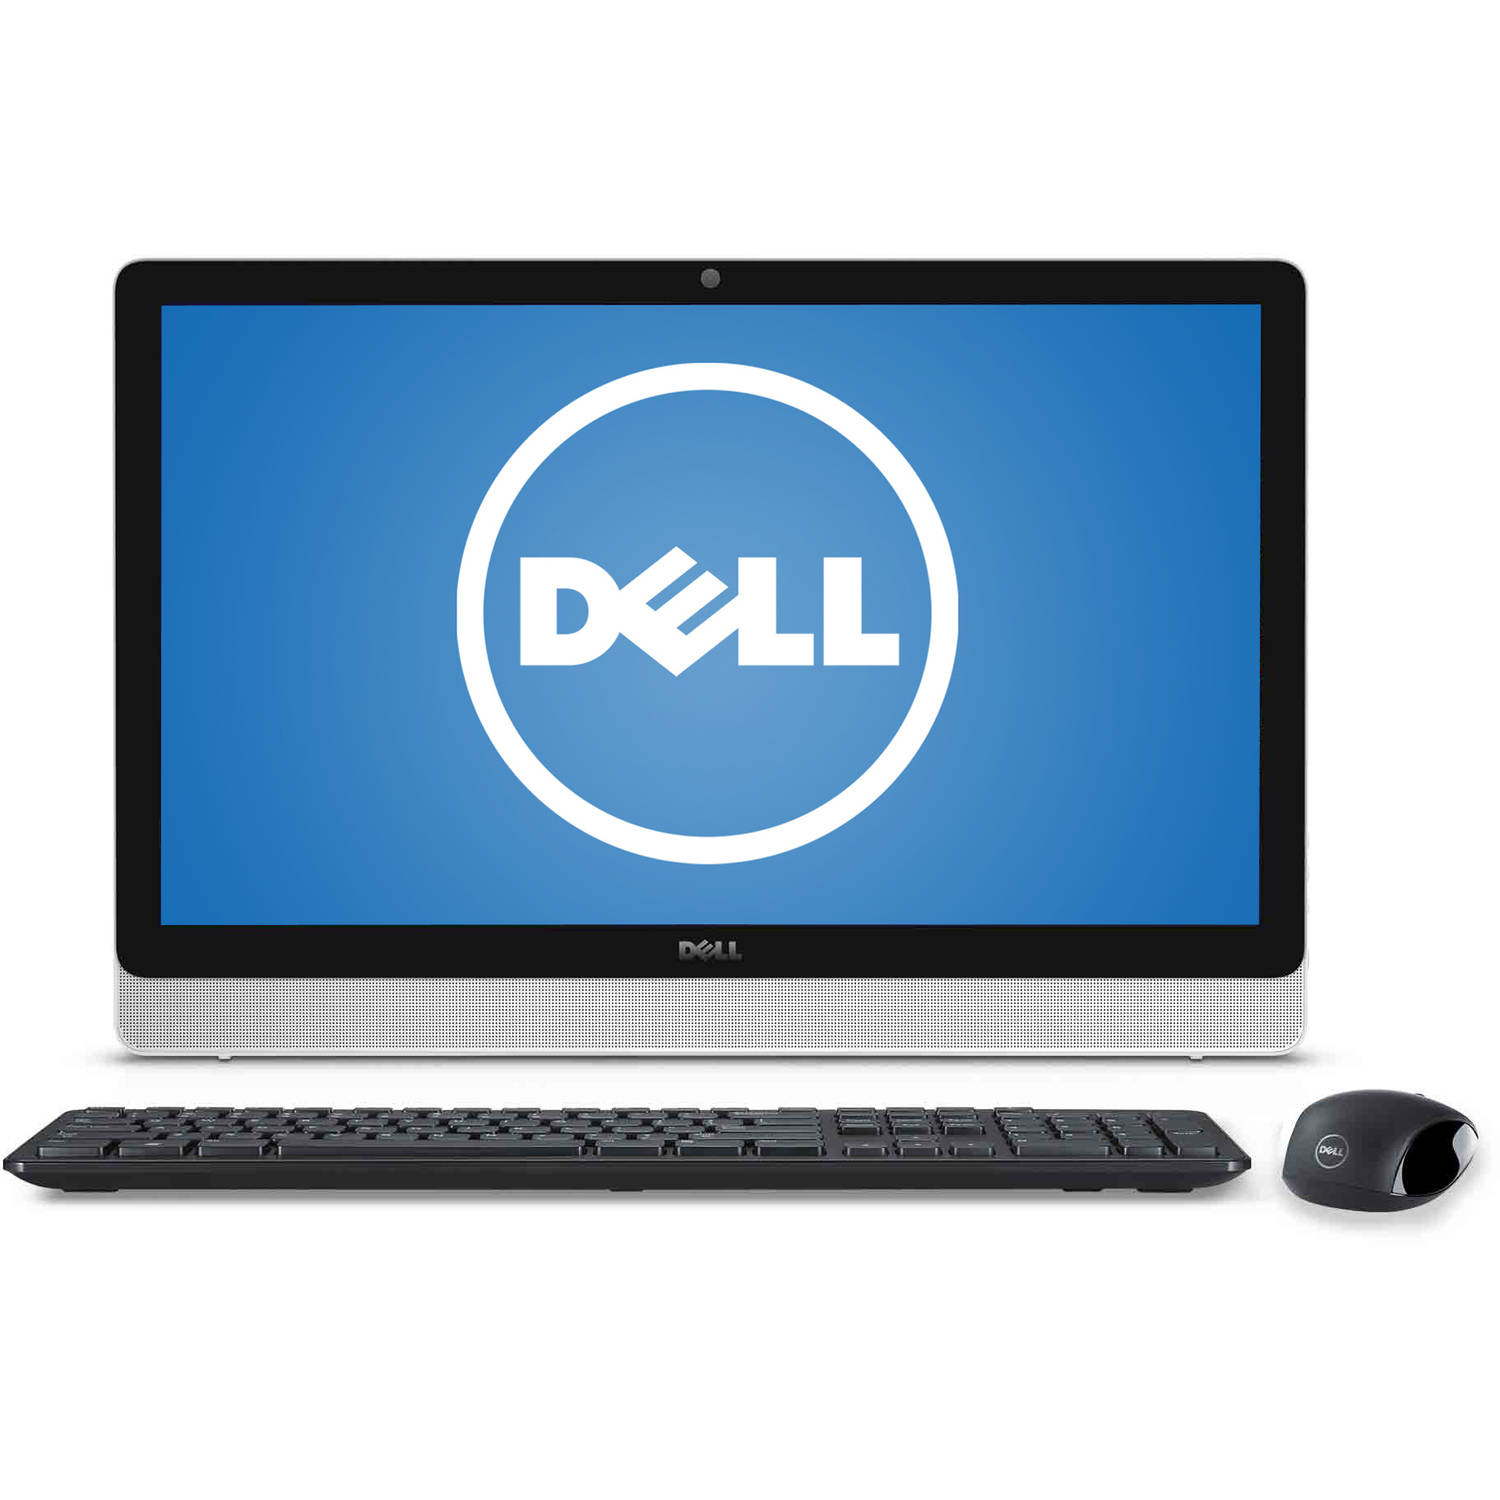 """Dell Silver/White Inspiron 3455 All-in-One Desktop PC with AMD Quad-Core A8-7410 Processor, 8GB Memory, 23.8"""" touch screen, 1TB Hard Drive and Windows 10 Home"""